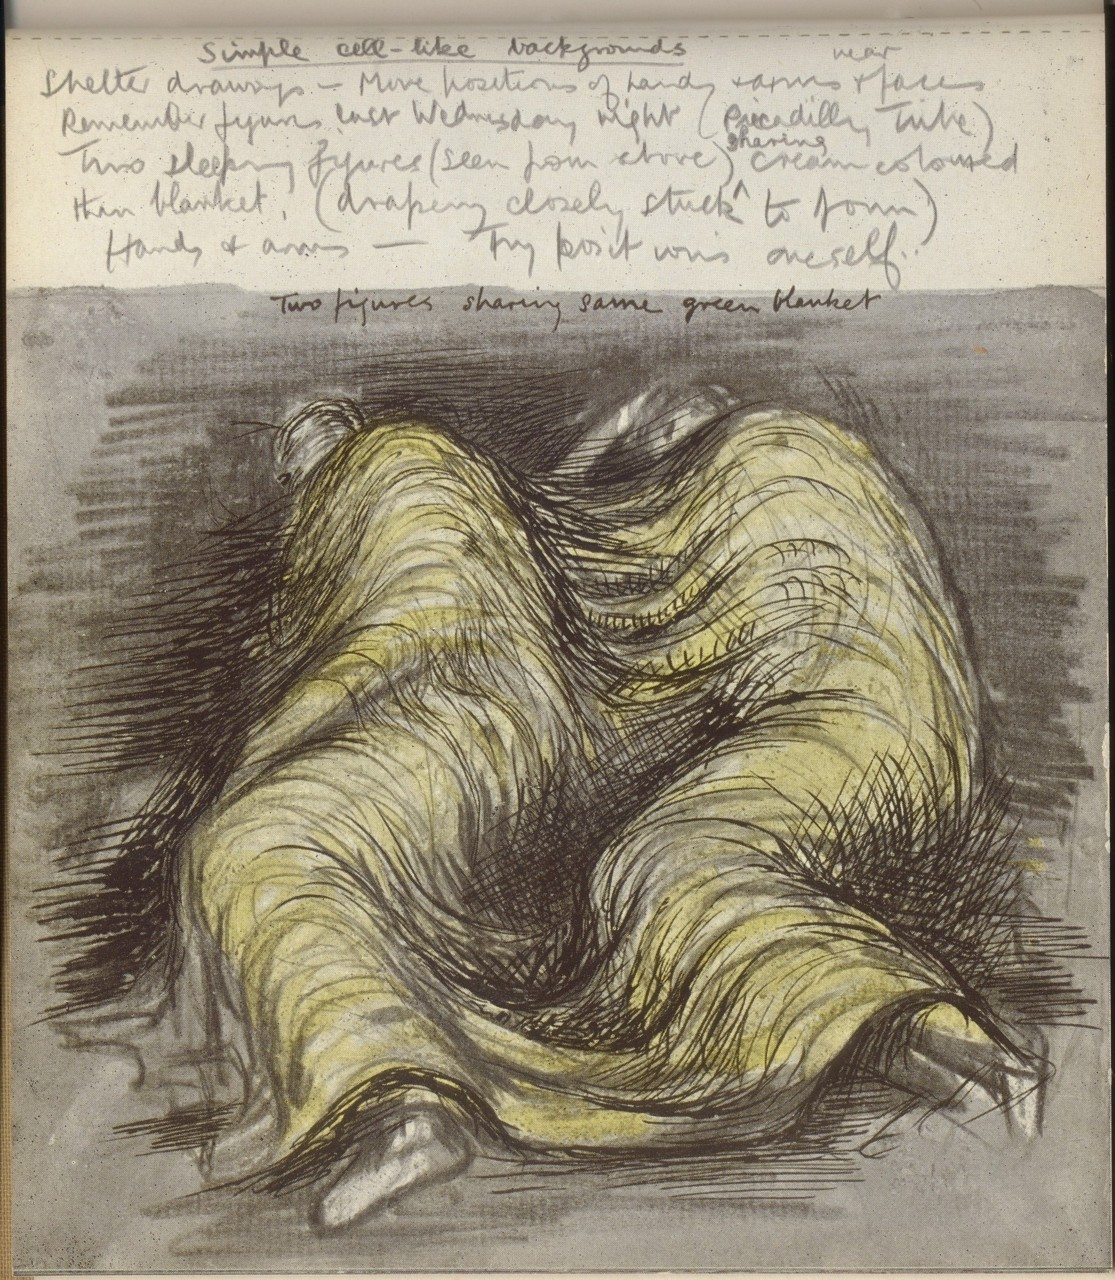 Moore, Henry, 1898-1986. Shelter sketch book / Henry Moore.                                                                 artknowledgenews.com   Sinister edge … Henry Moore's Pink and Green Sleepers (1941), of  figures sleeping in London's Underground during the blitz. Reproduced by  permission of the Henry Moore Foundation/Tate(http://www.guardian.co.uk/artanddesign/2010/feb/18/henry-moore-sculpture-tate)